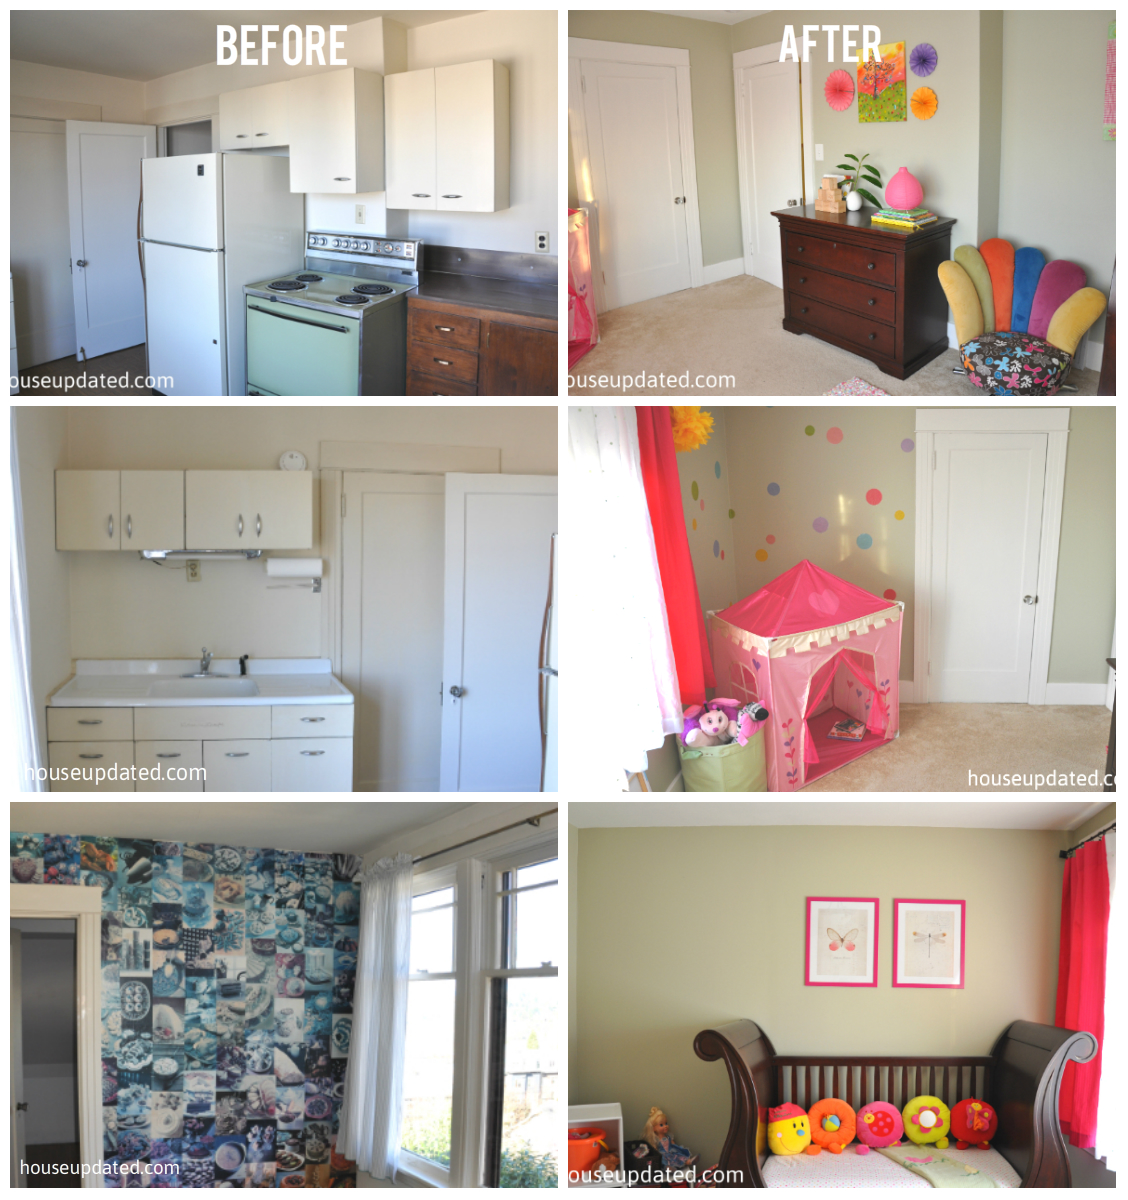 from kitchen to girl's bedroom